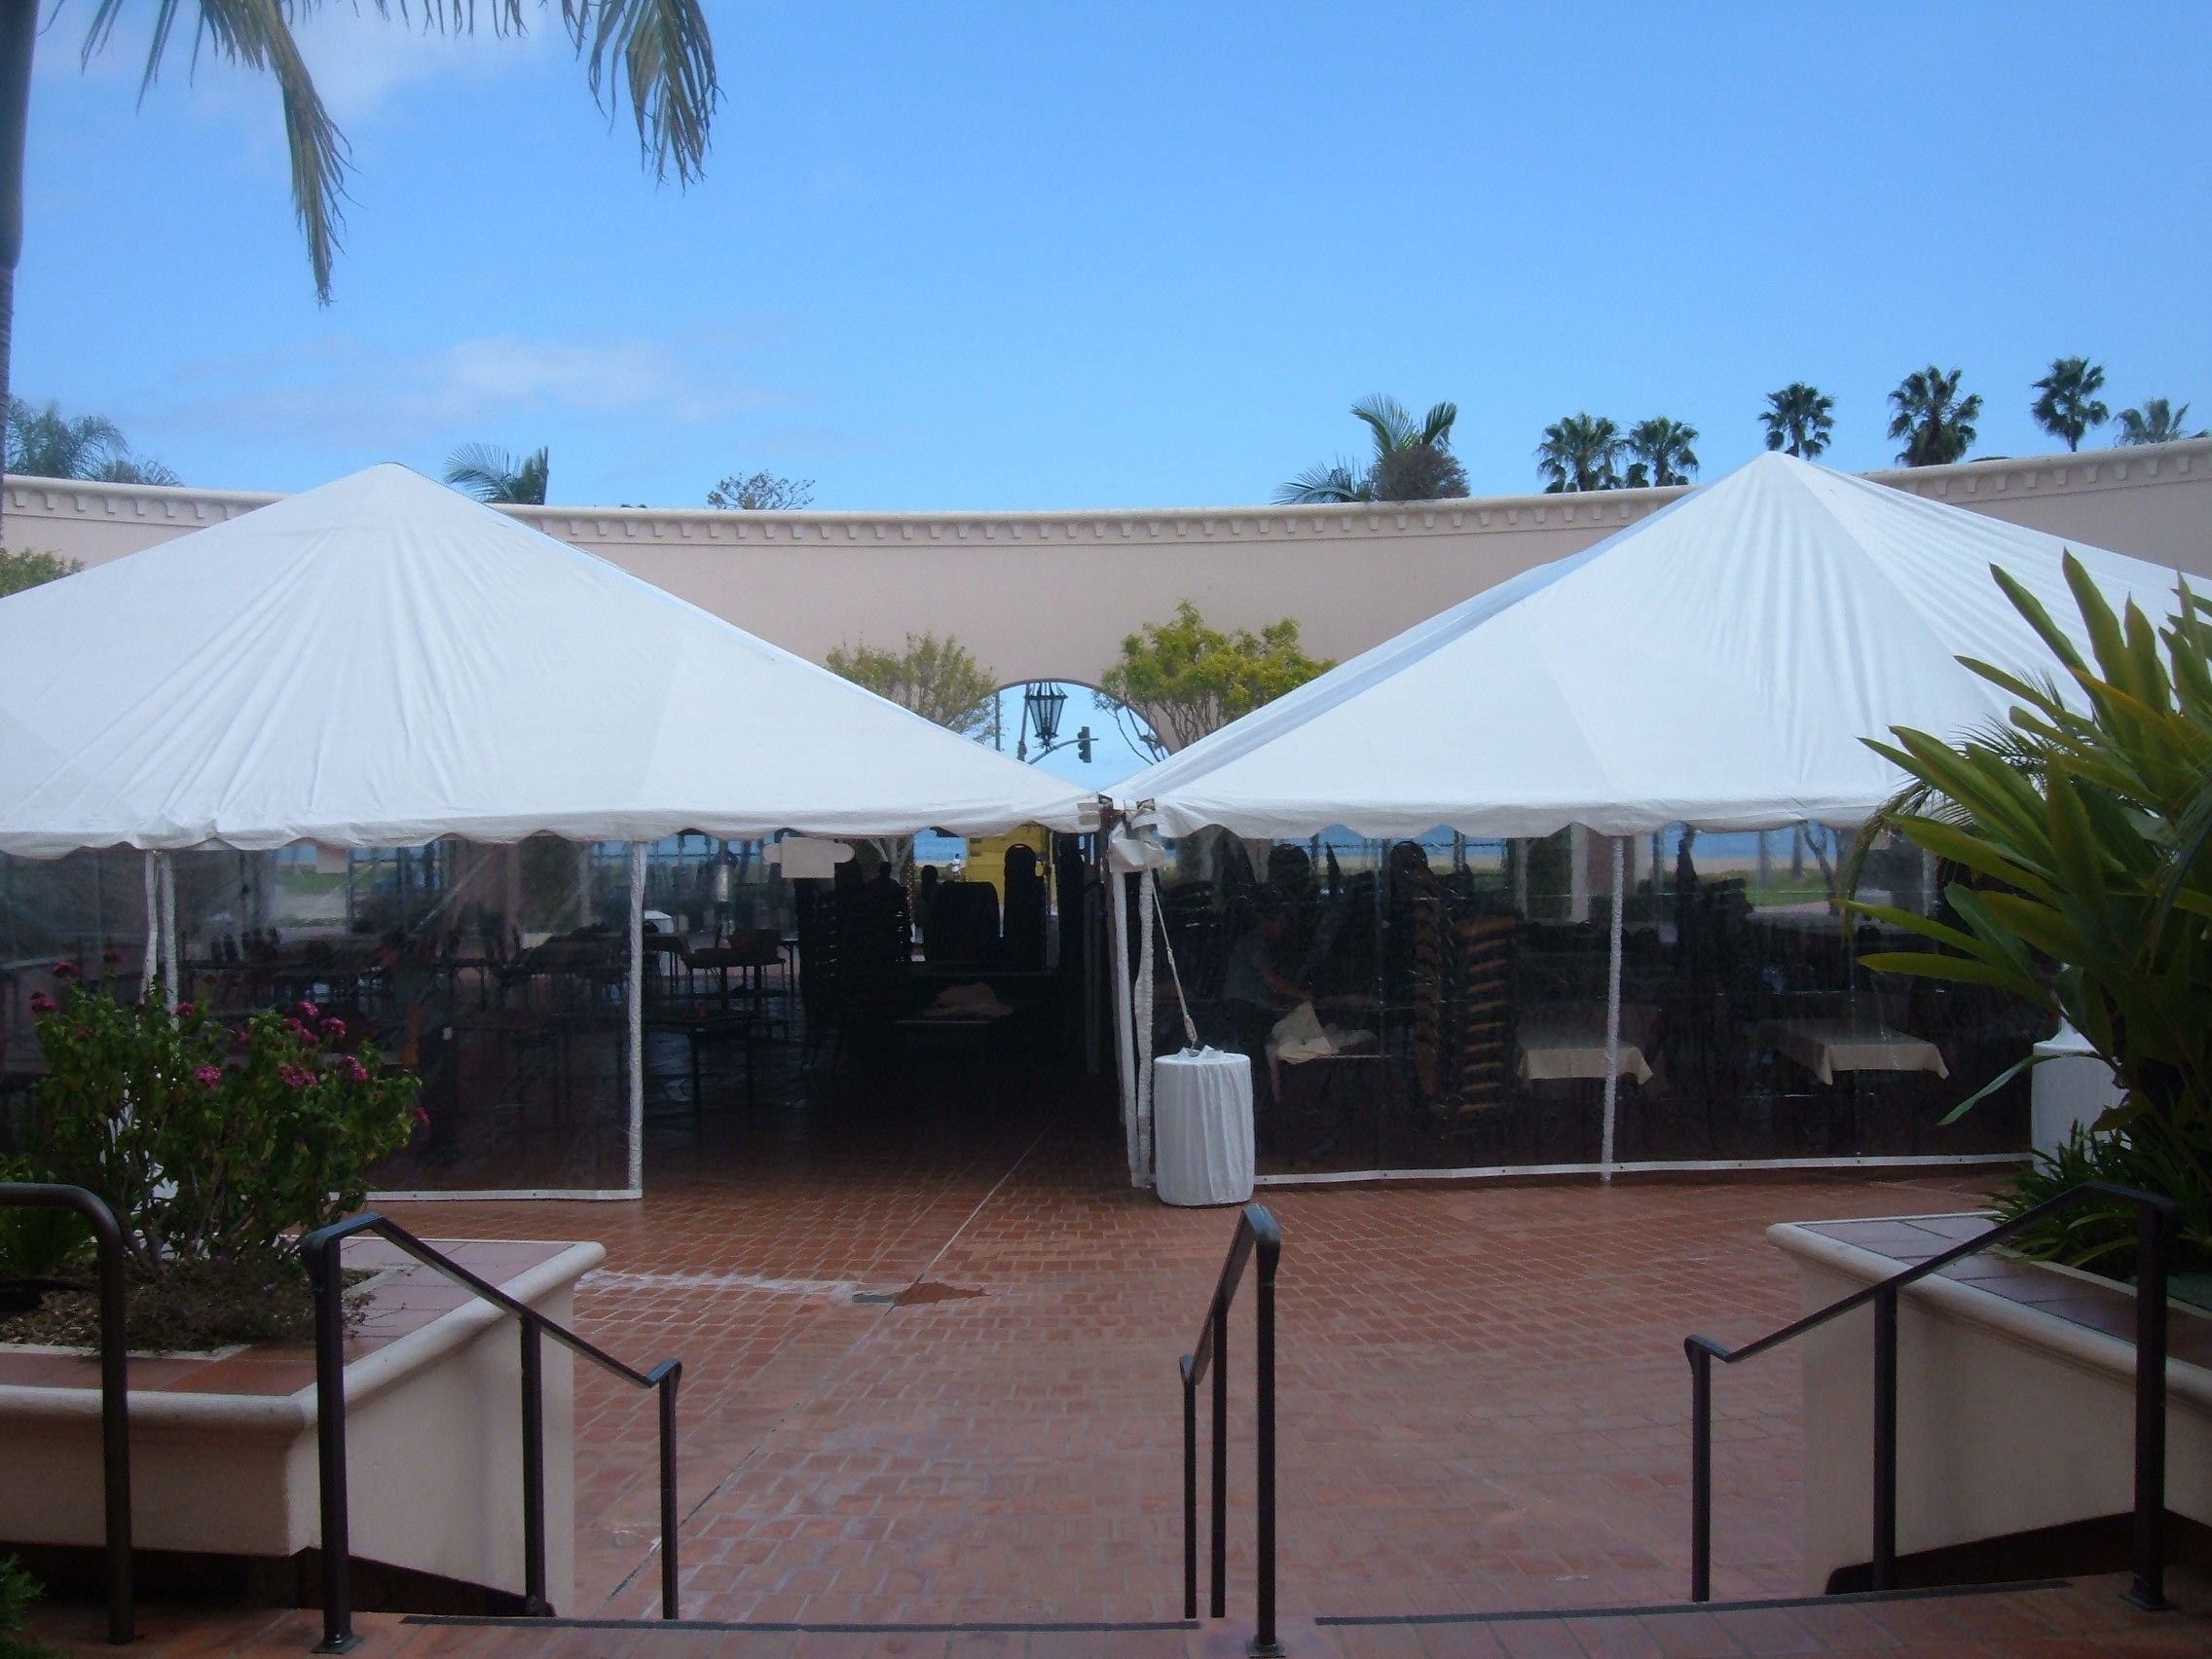 Basic Canopy Tent in the Plaza del